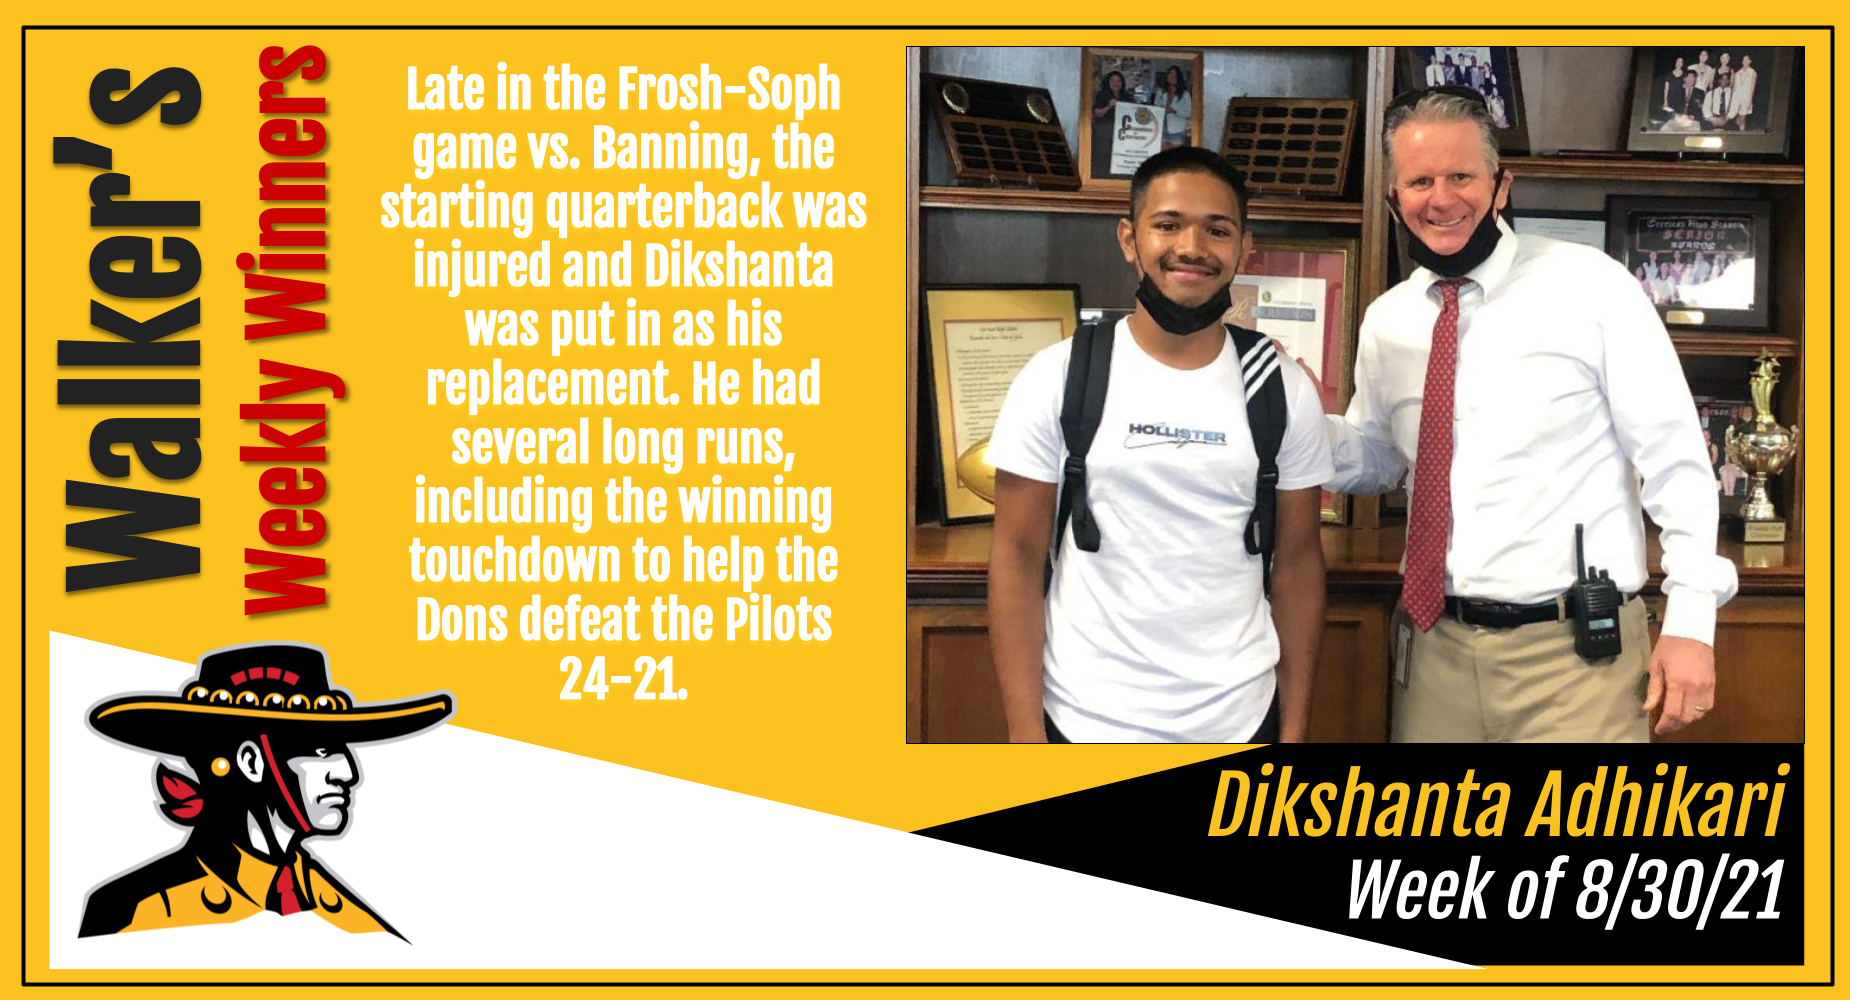 This week's winner is Dikshanta Adhikari. Late in the Frosh-Soph game vs. Banning, the starting quarterback was injured and Dikshanta was put in as his replacement. He had several long runs, including the winning touchdown to help the Dons defeat the Pilots 24-21.